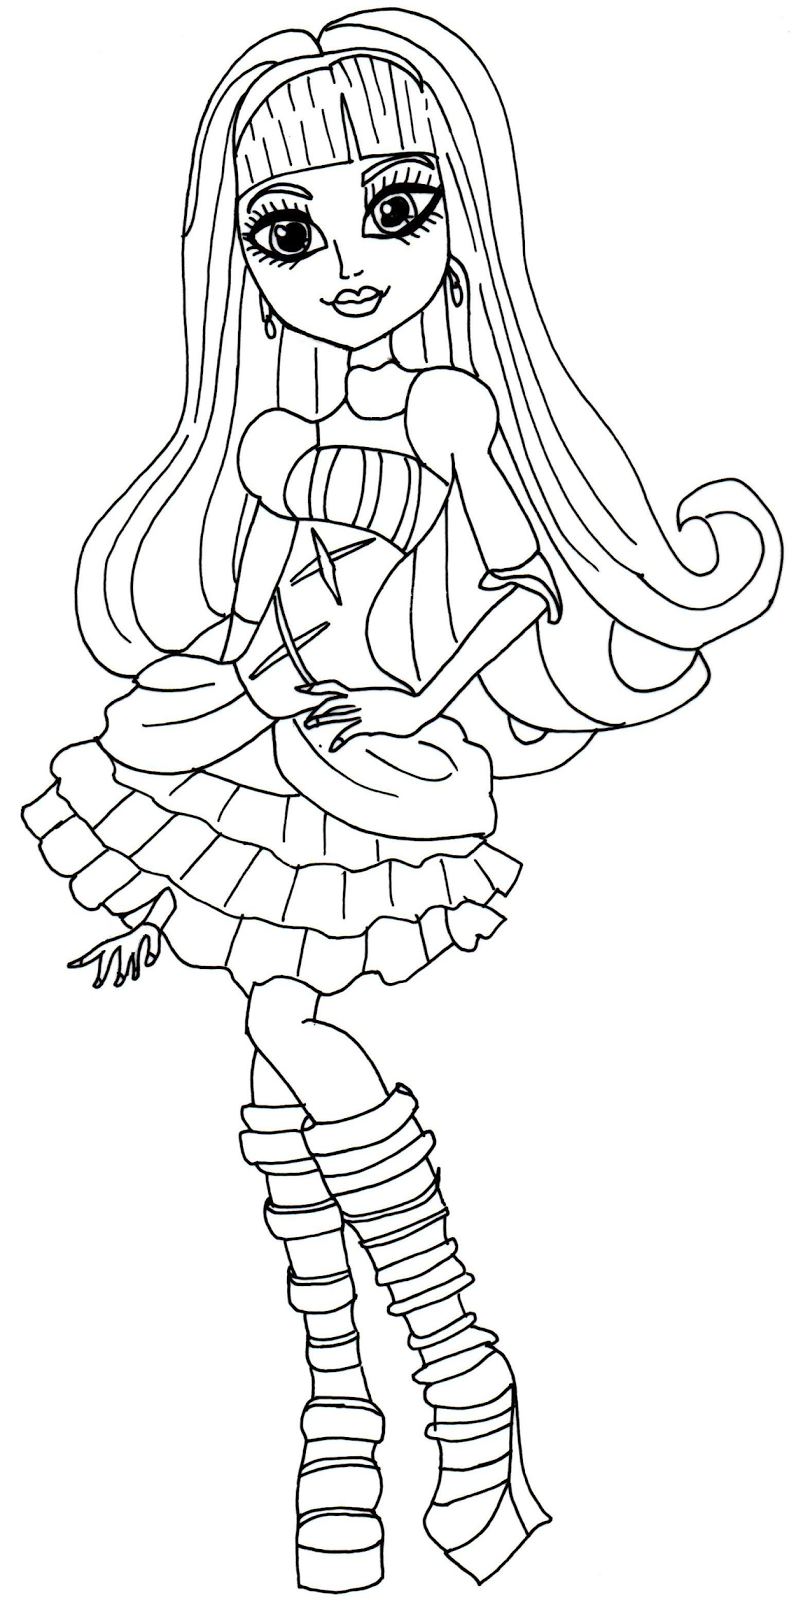 Integrity Coloring Pages Coloring Pages